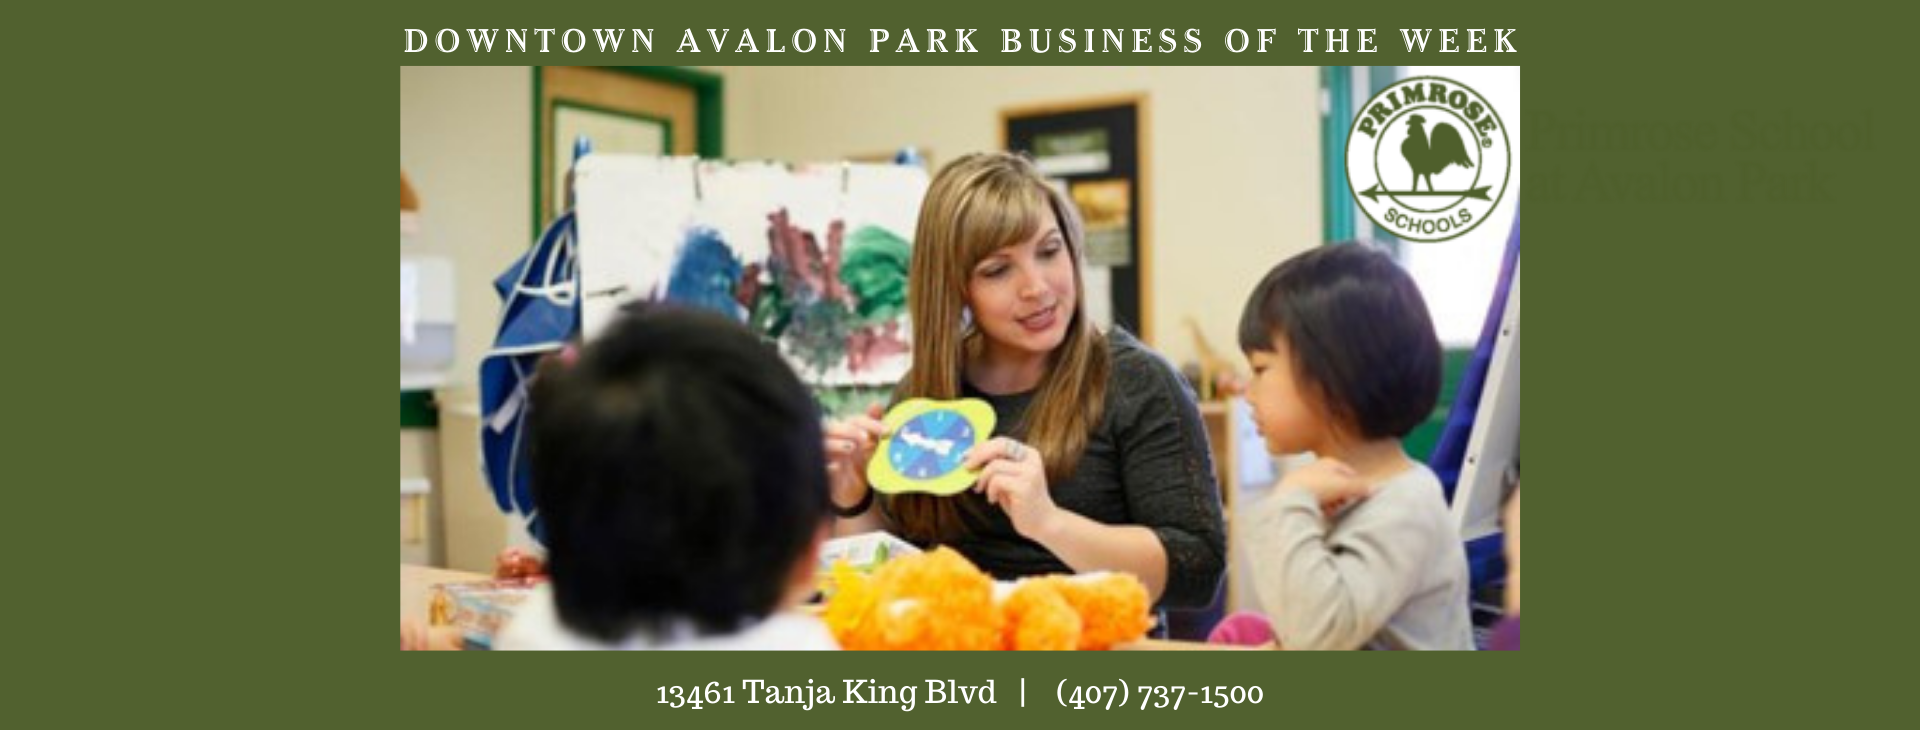 Downtown Avalon Park Business Of The Week